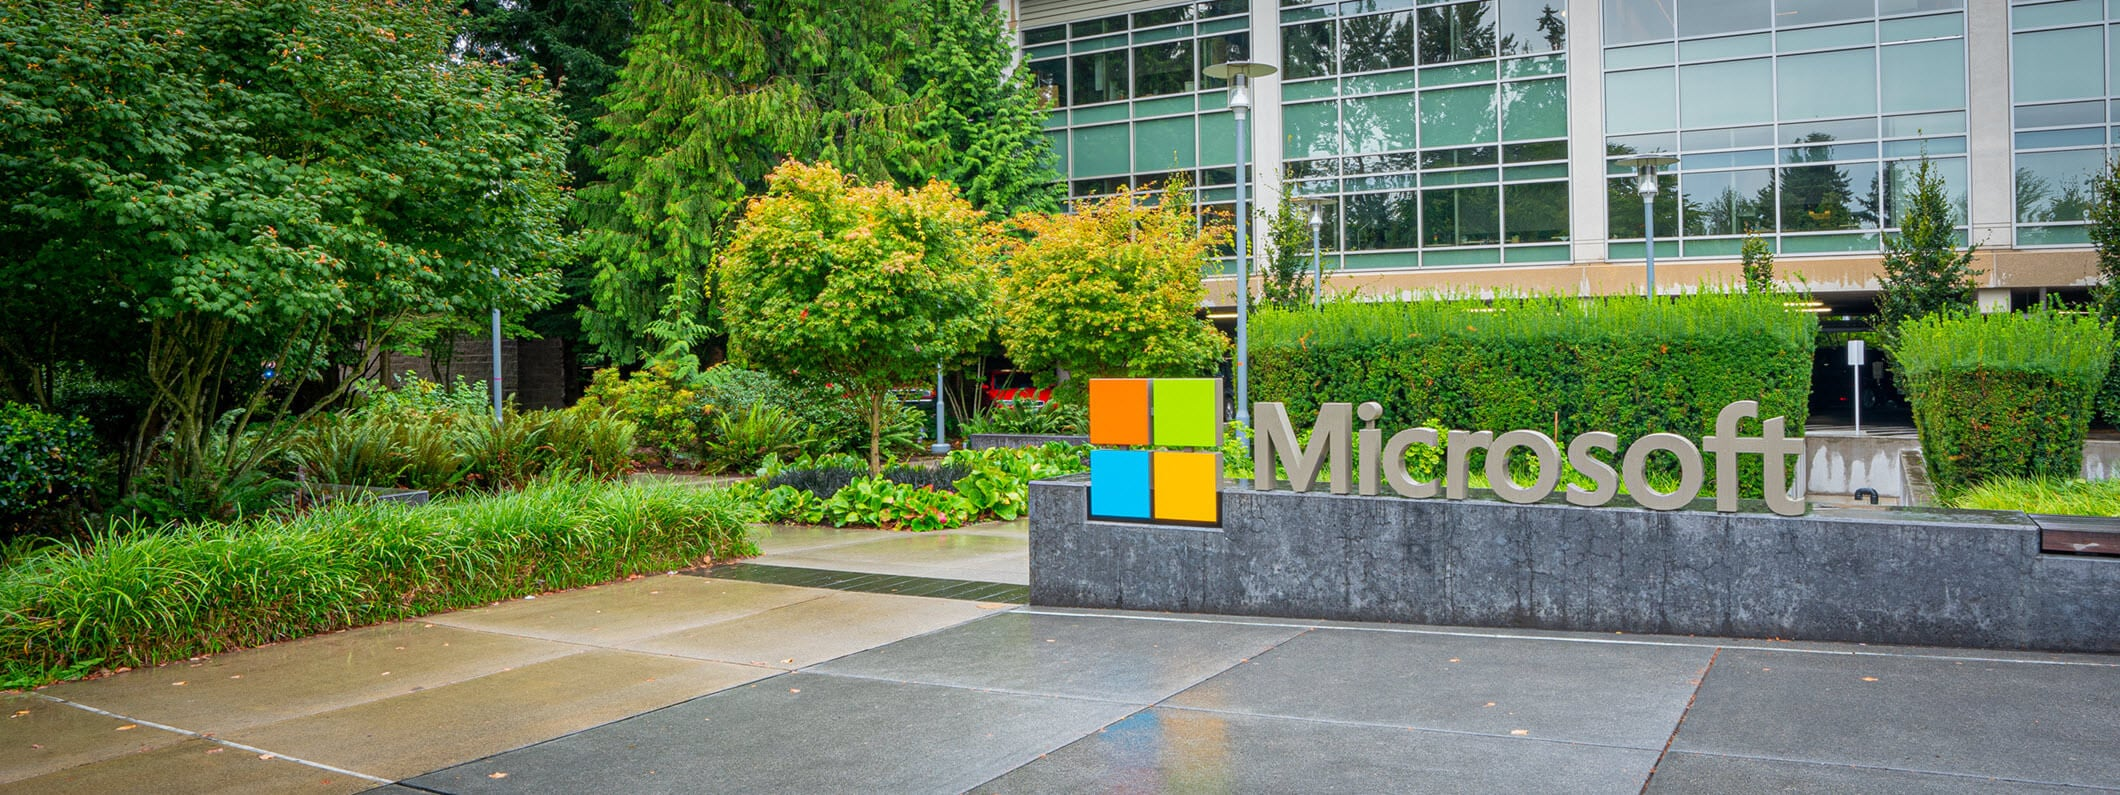 Outside view of Microsoft campus.